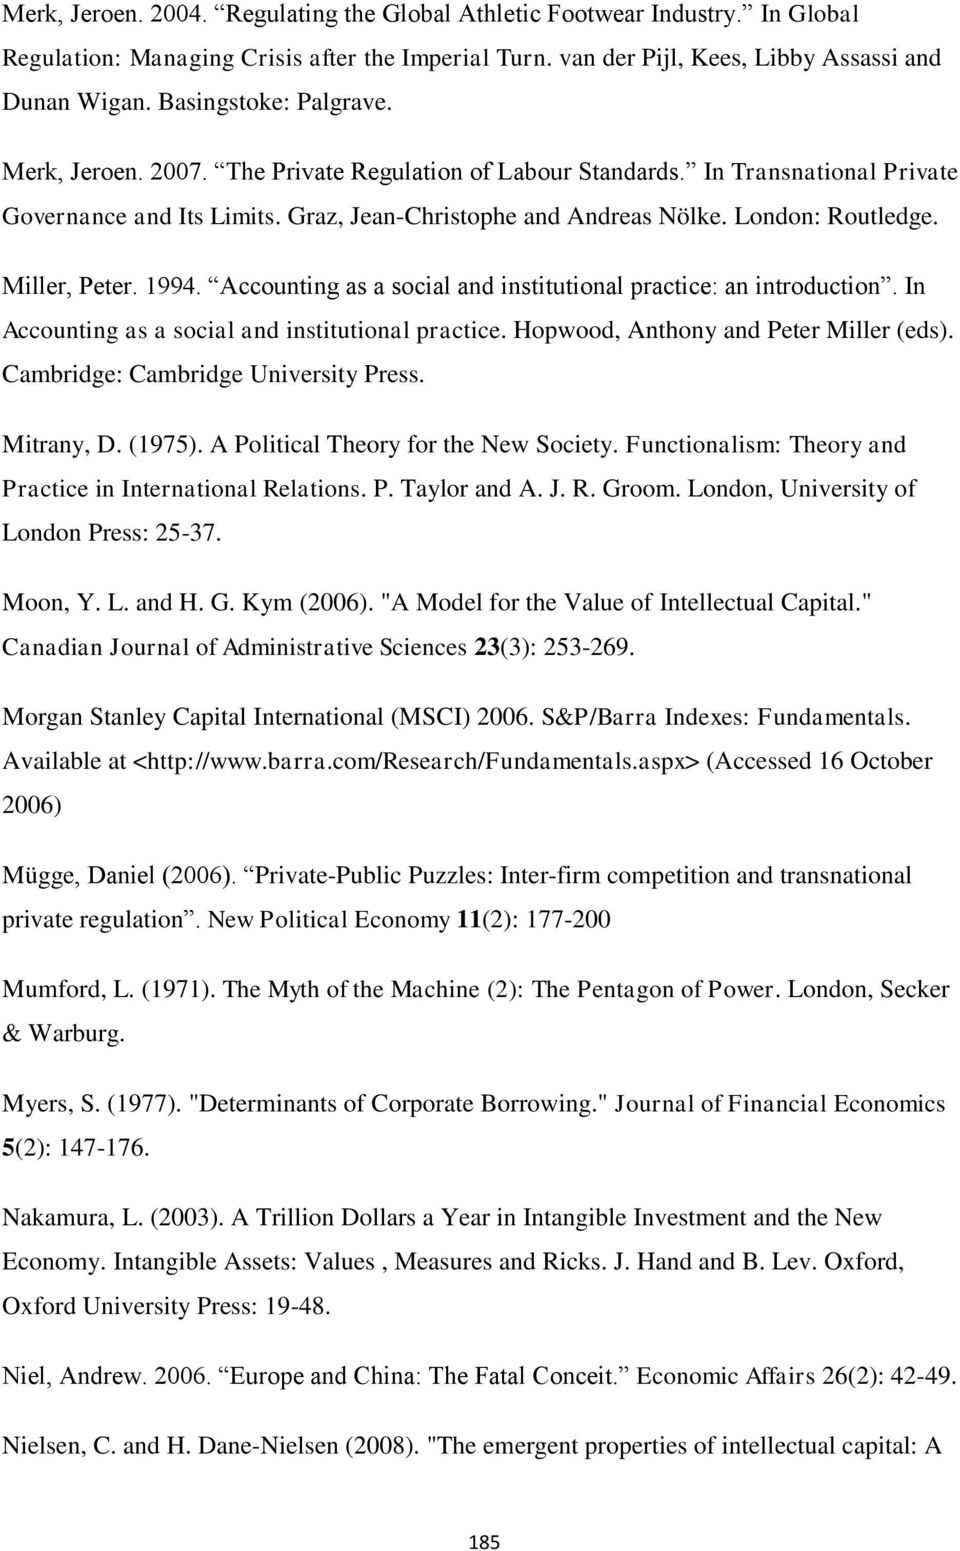 Miller, Peter. 1994. Accounting as a social and institutional practice: an introduction. In Accounting as a social and institutional practice. Hopwood, Anthony and Peter Miller (eds).